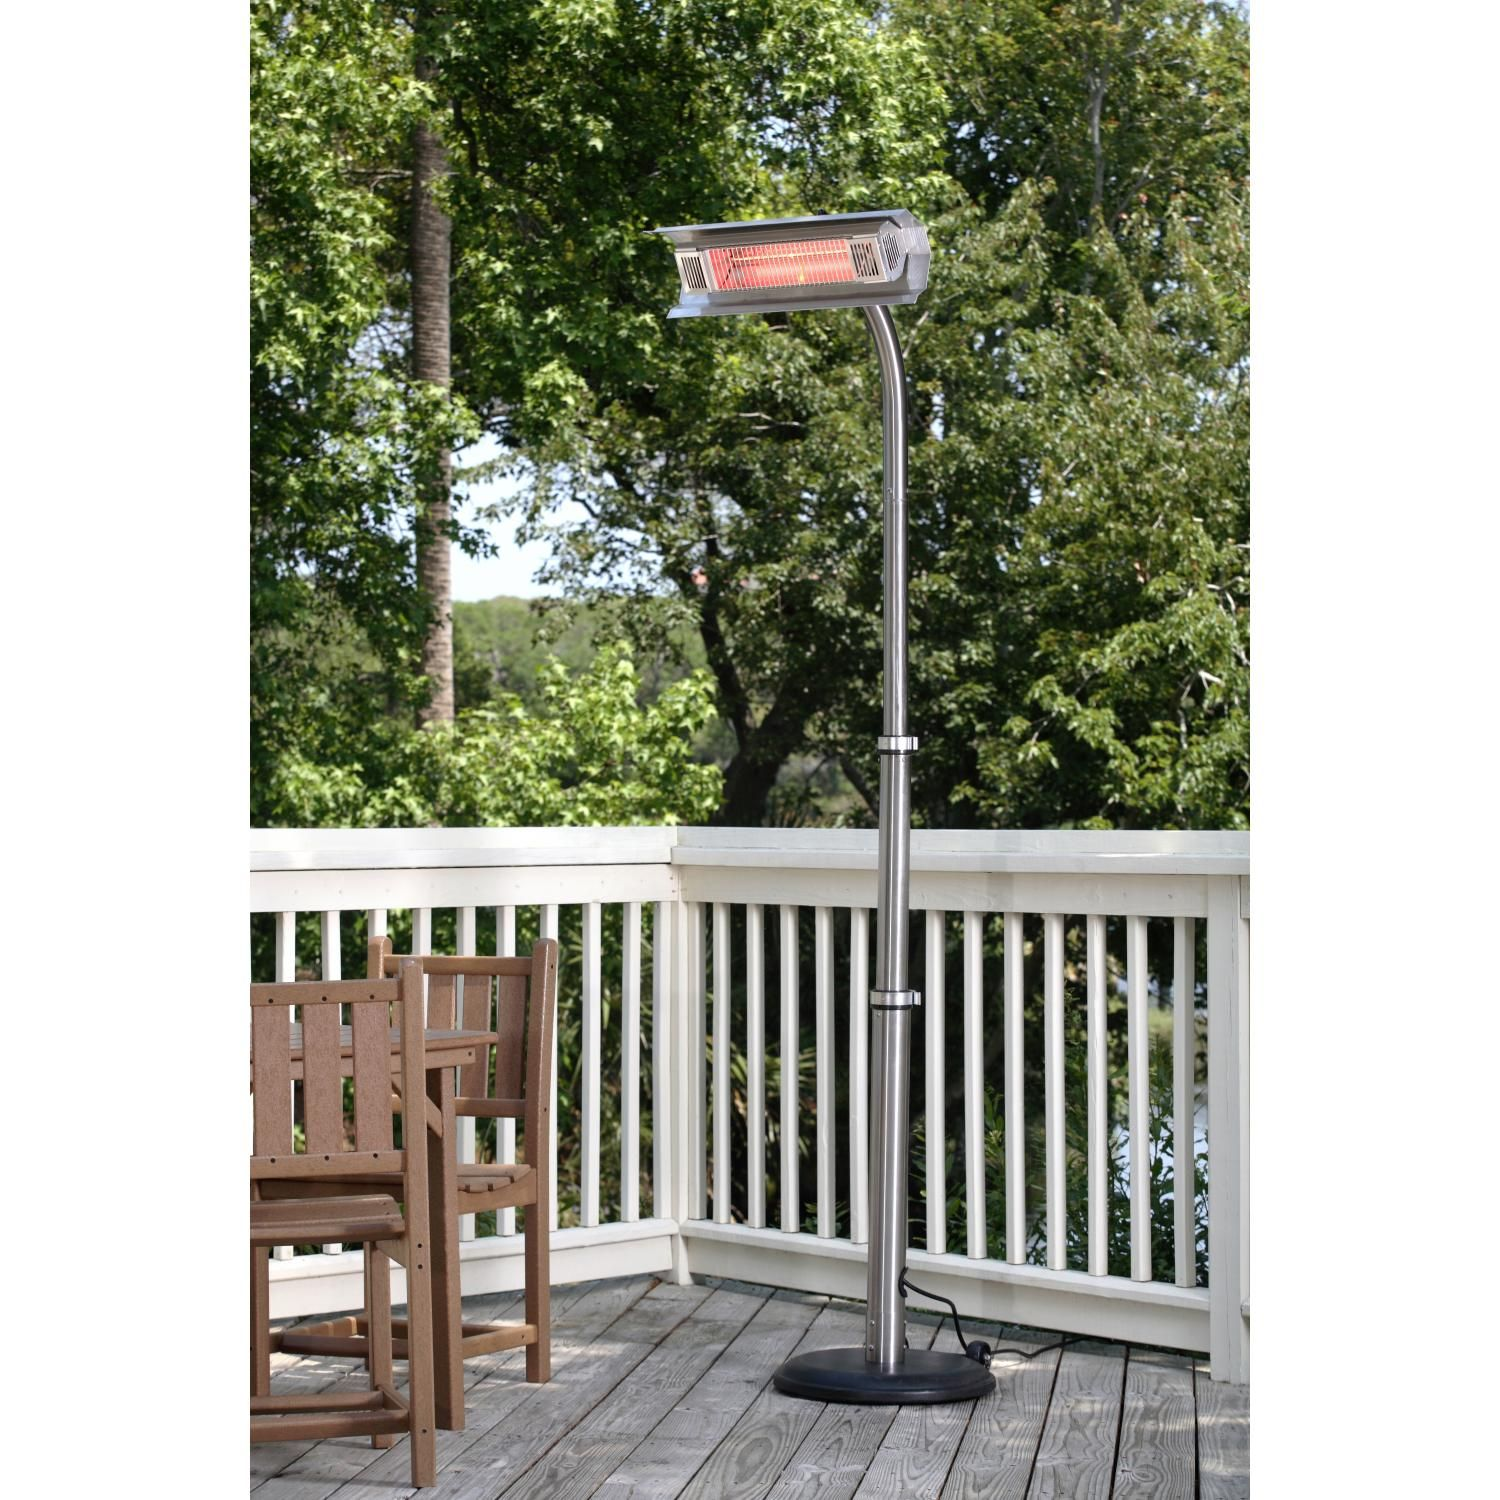 Fire Sense 1500 Watt Electric Infrared Patio Heater With Telescoping Offset  Pole And PVC Cover